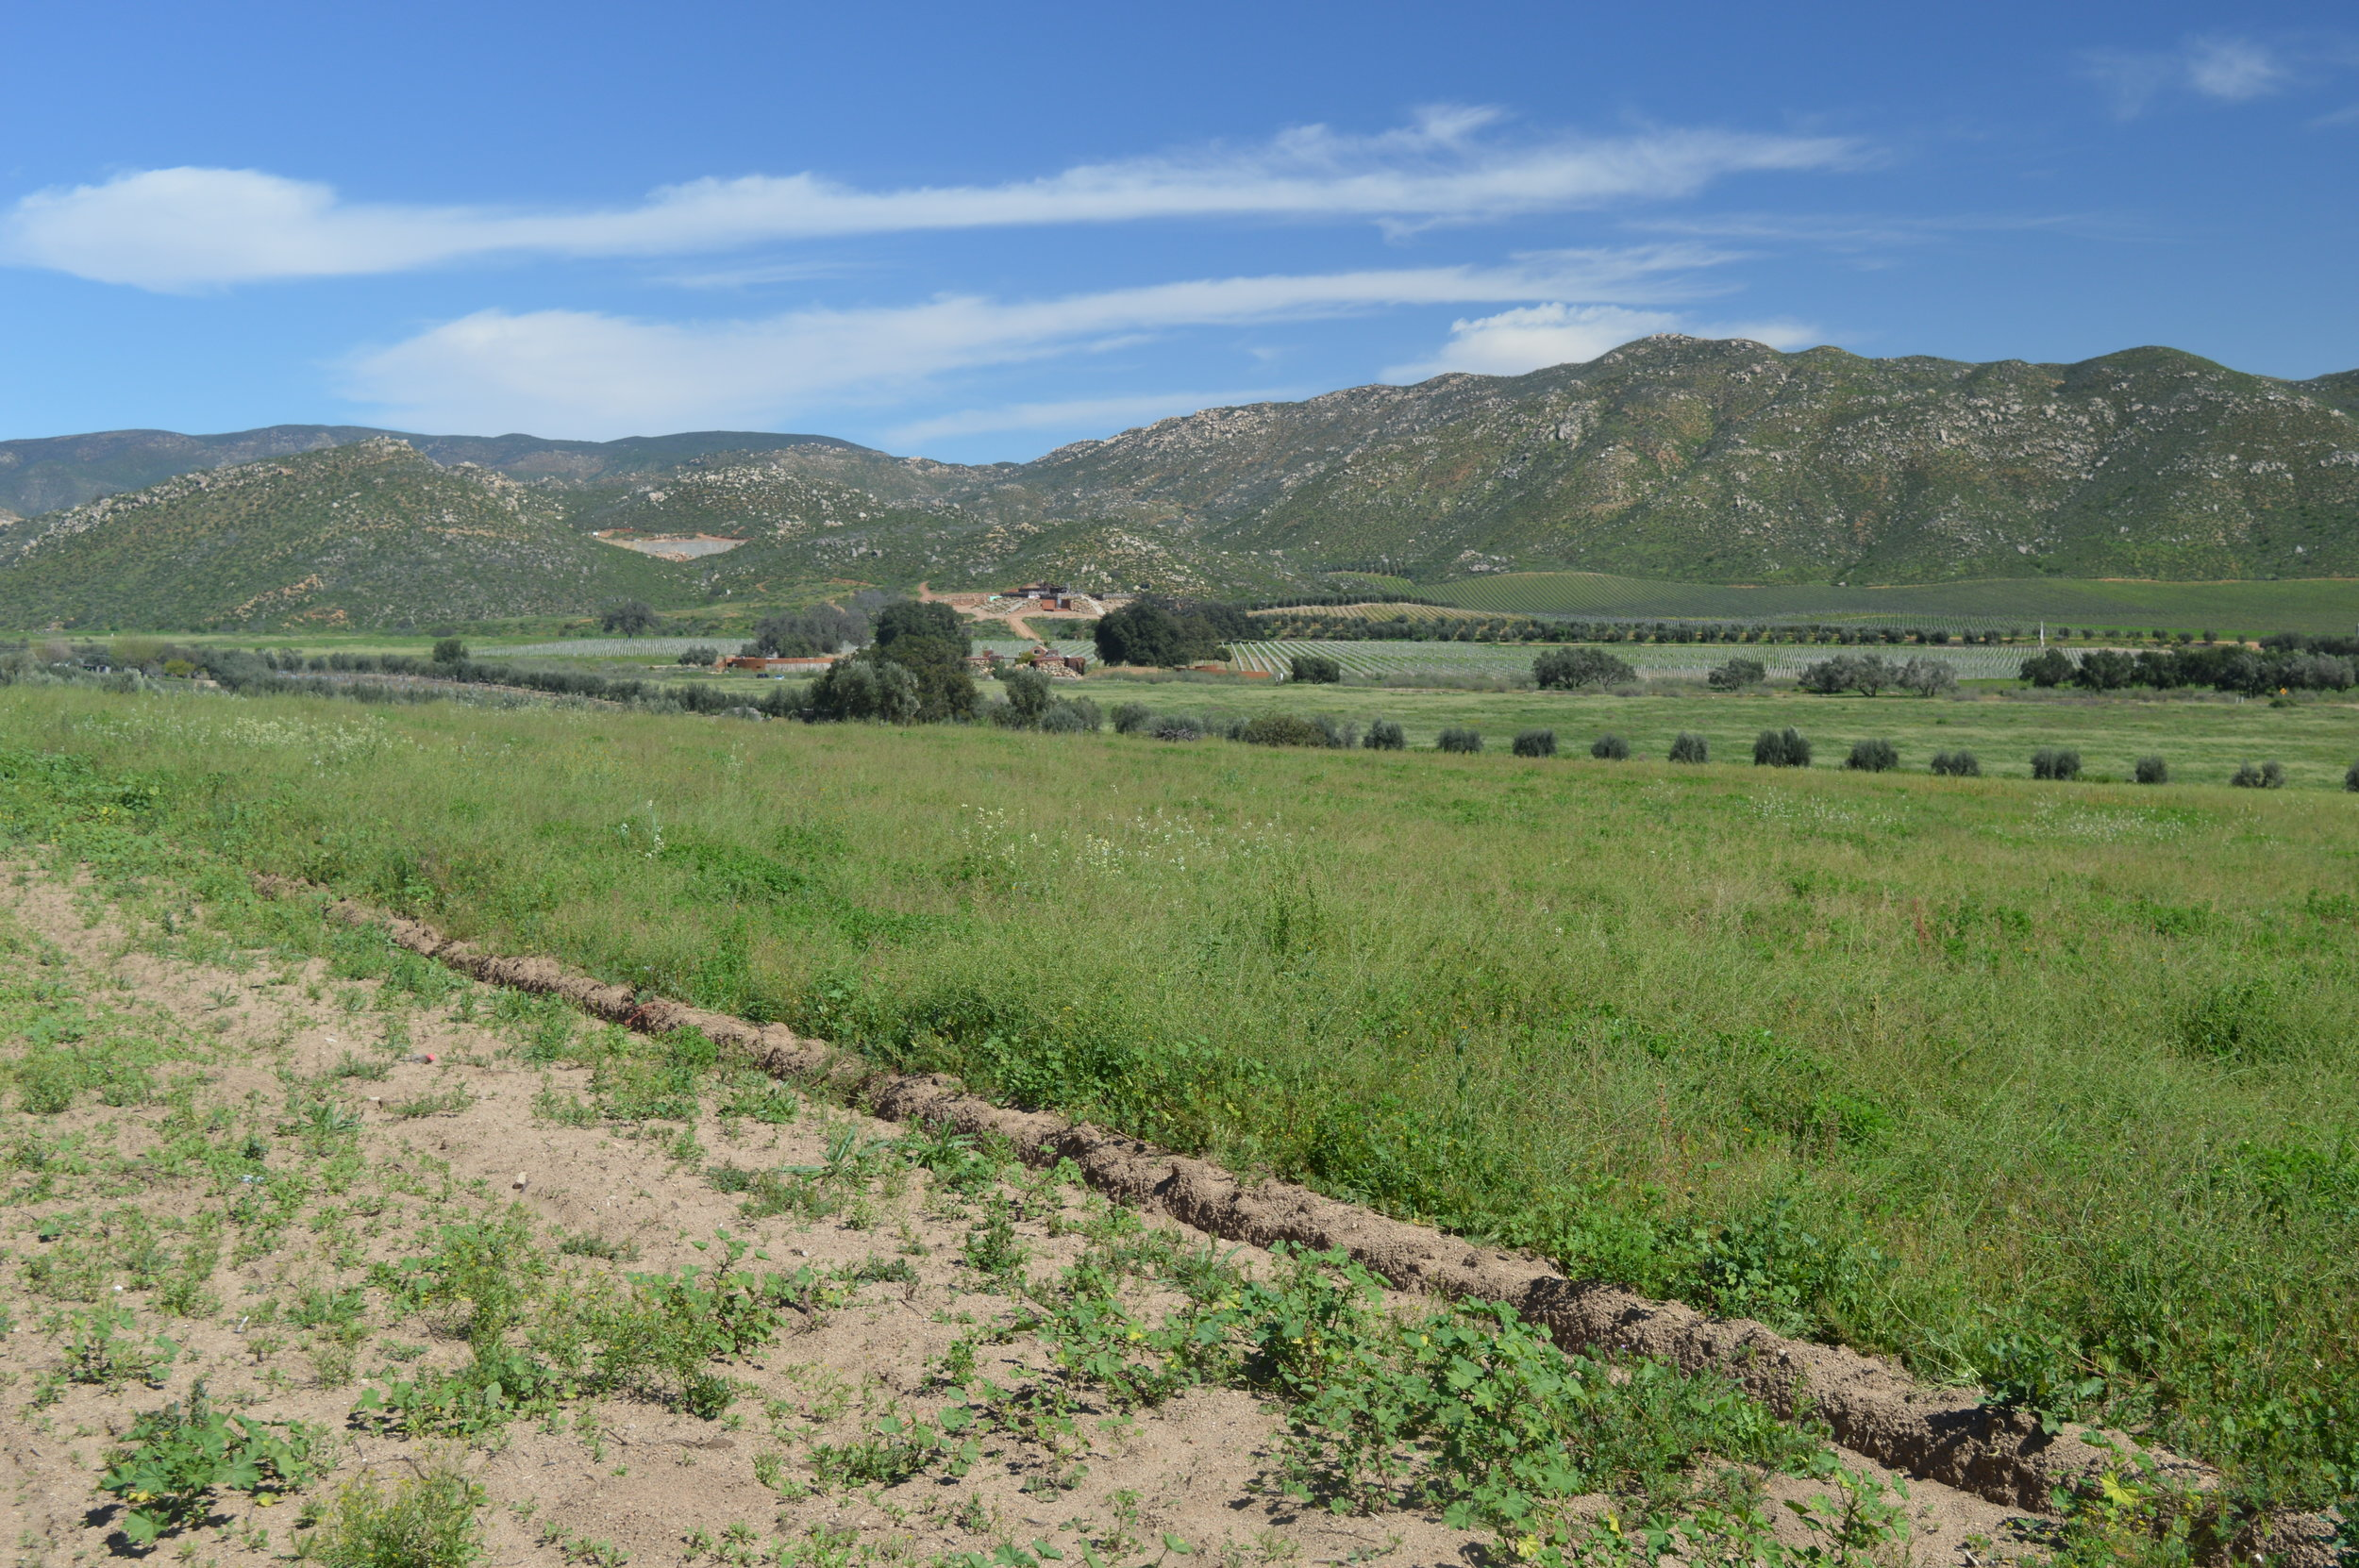 Valle de Guadalupe, Baja's wine country.